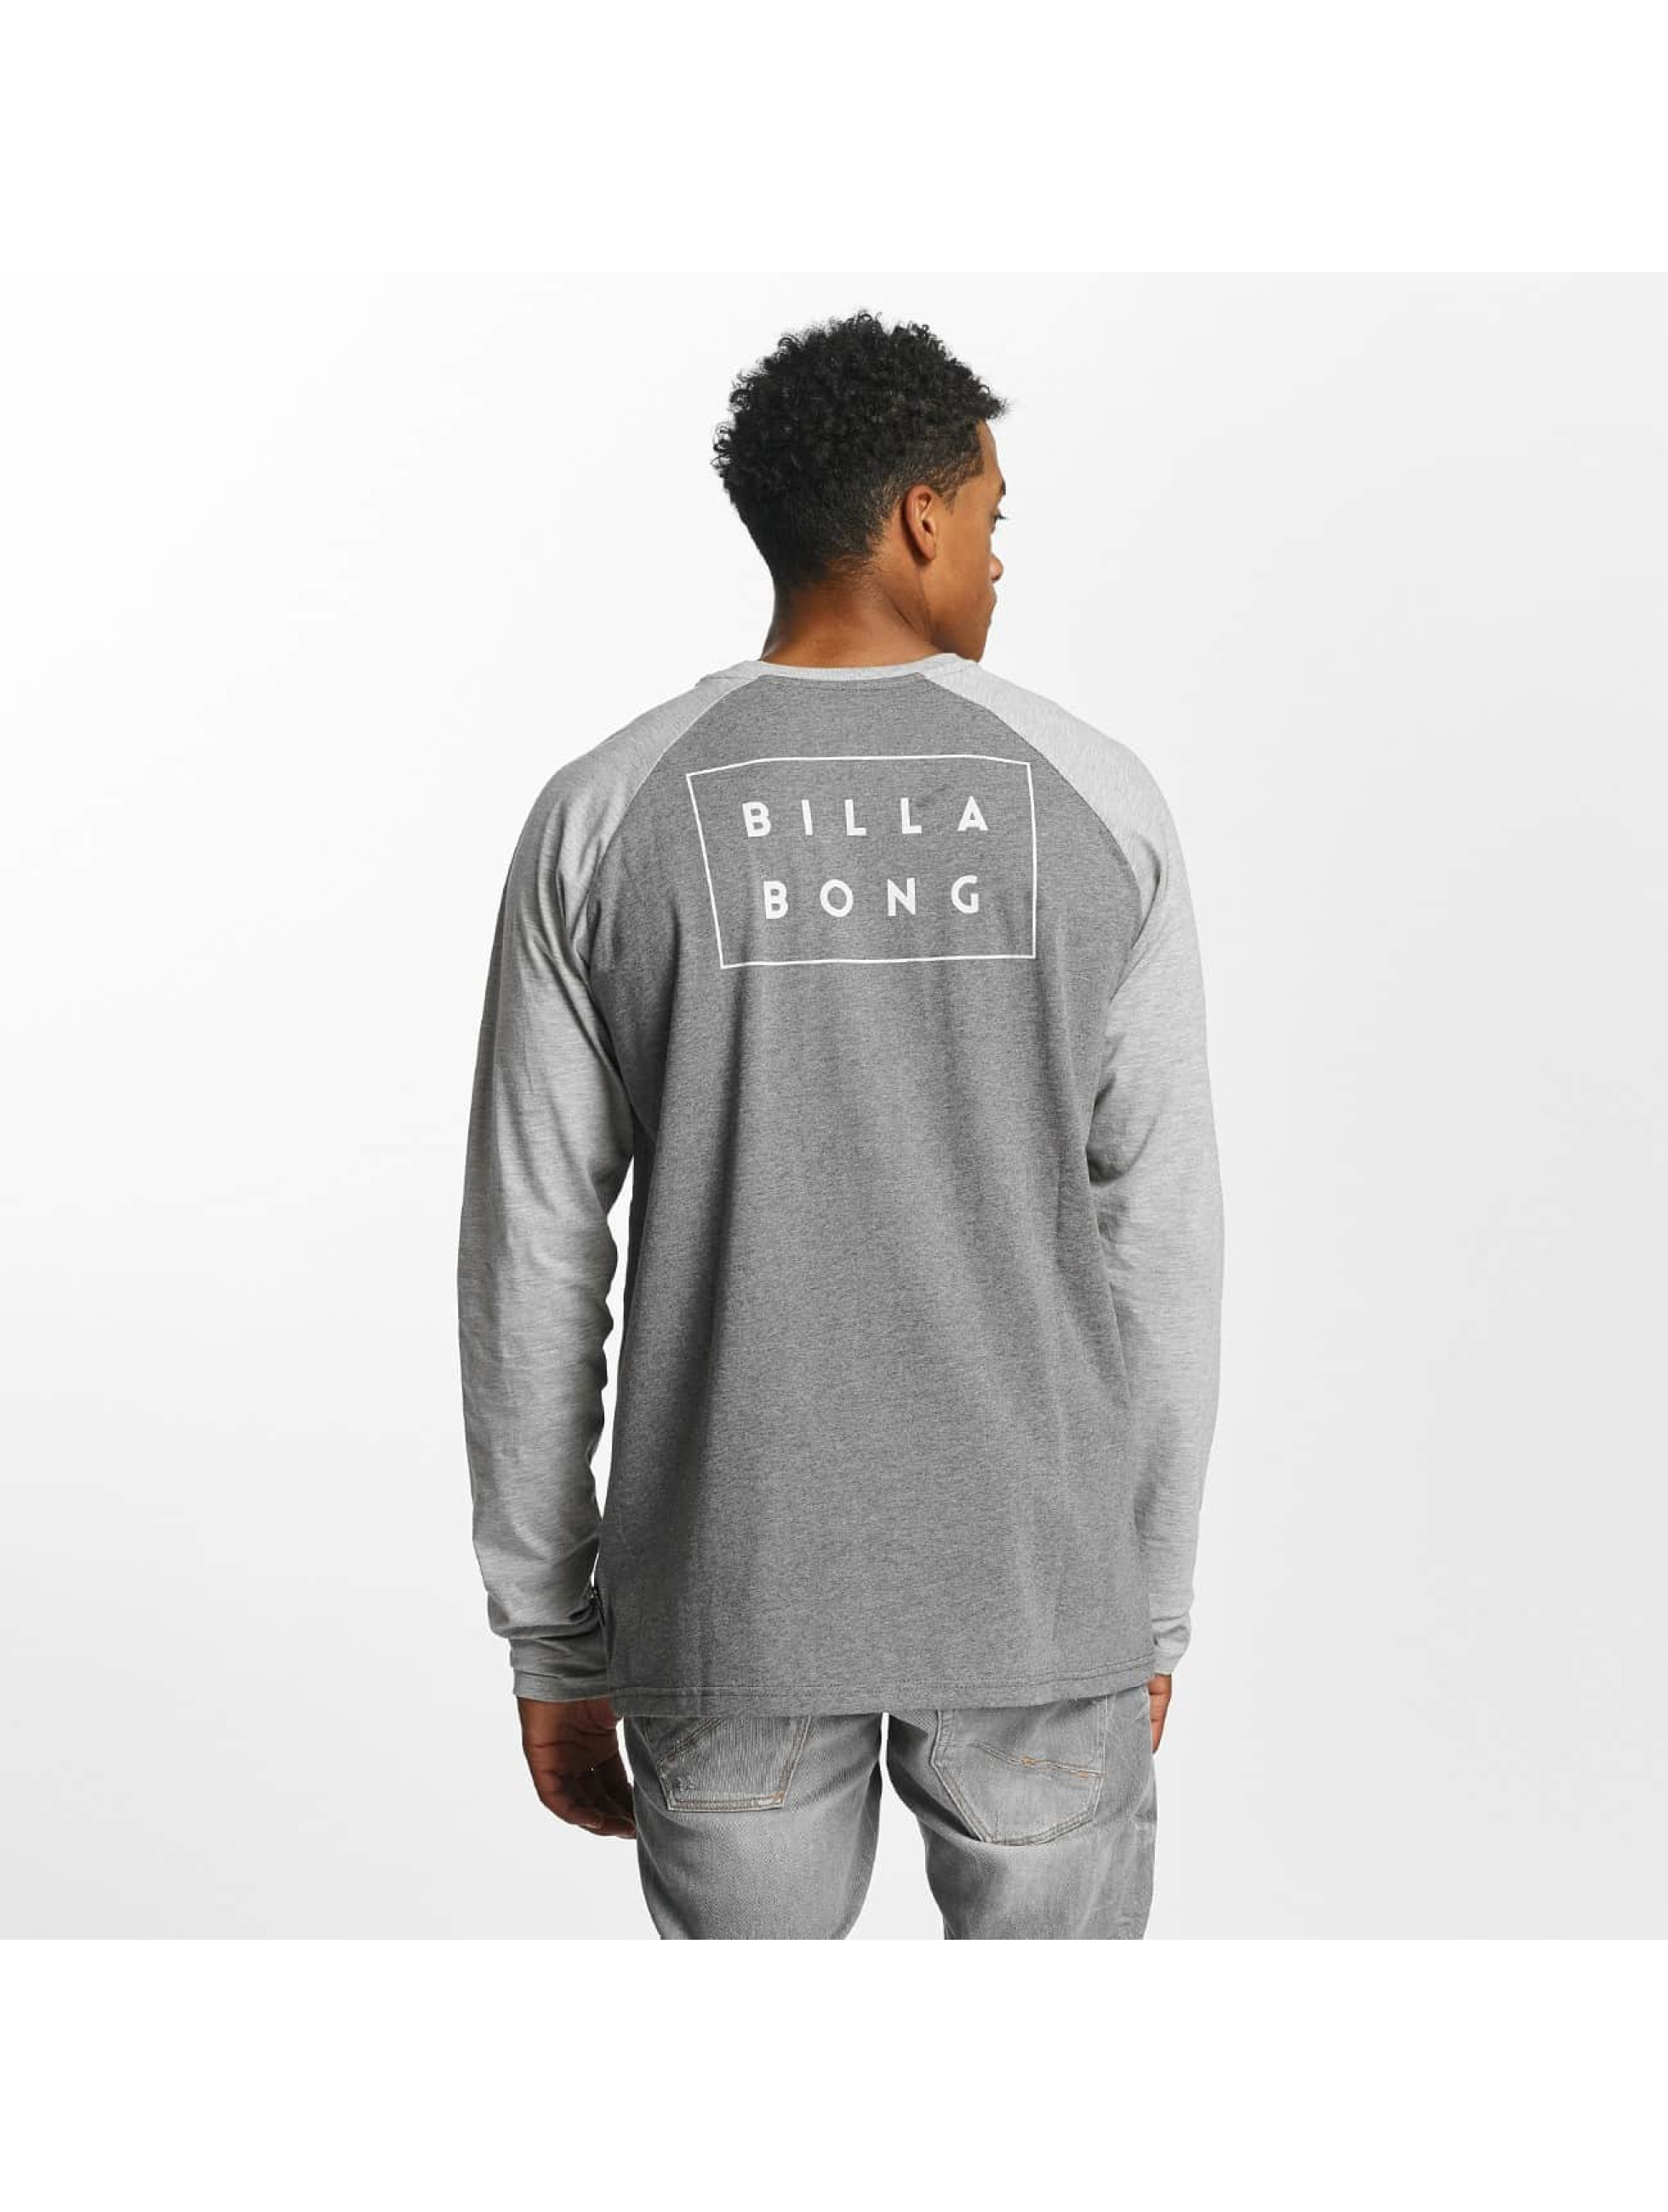 Billabong Longsleeve Die Cut gray